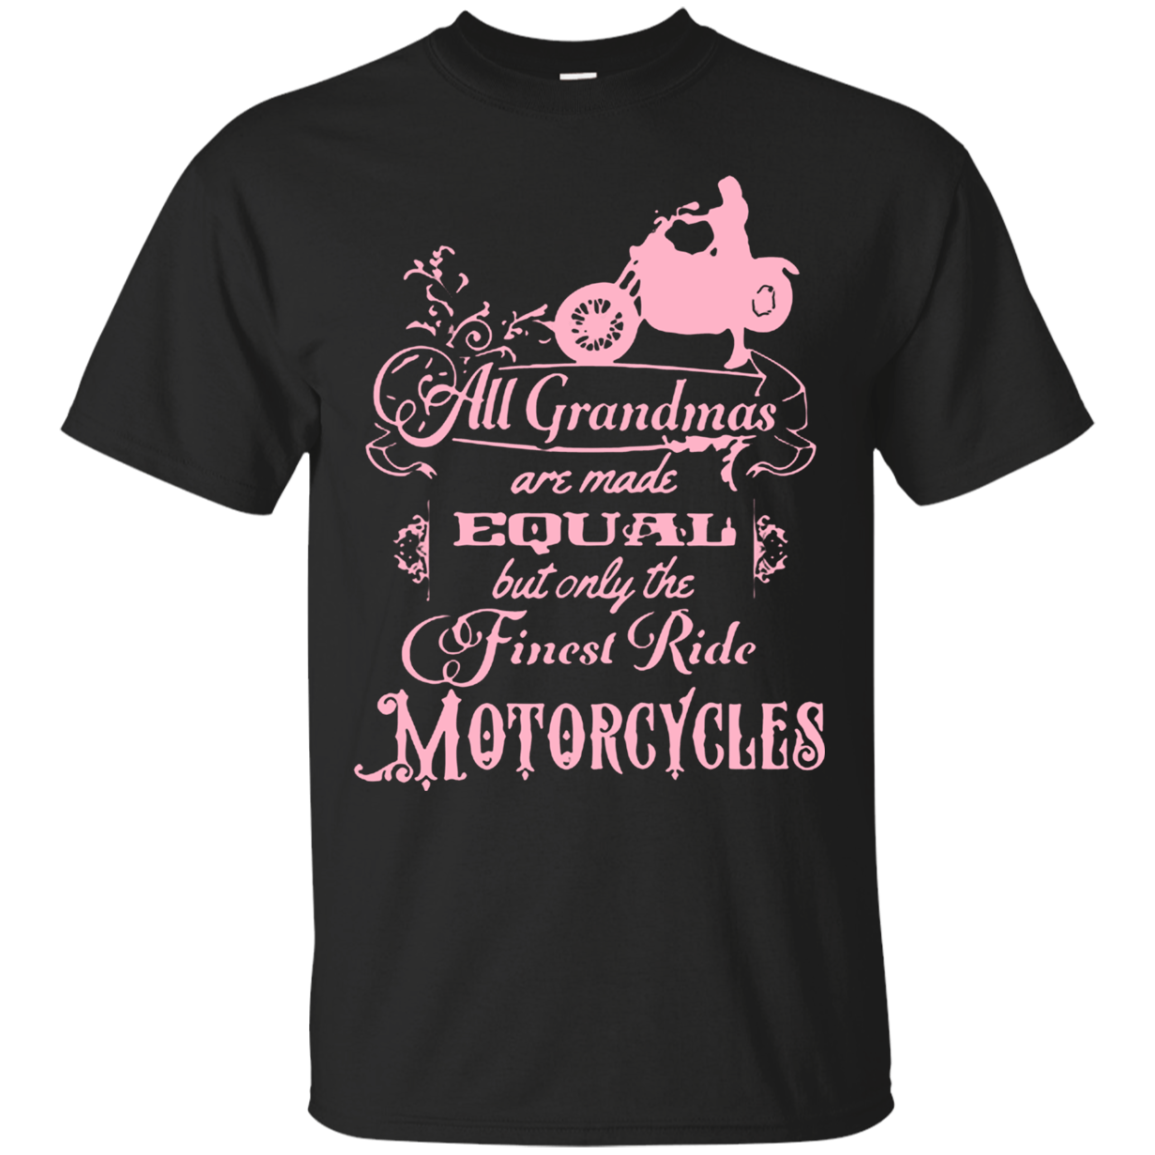 Motorcycle Grandmas All Grandmas Are Made Equal But Only The Finest Ride Motorcycles T Shirt Hoodies Sweatshirt